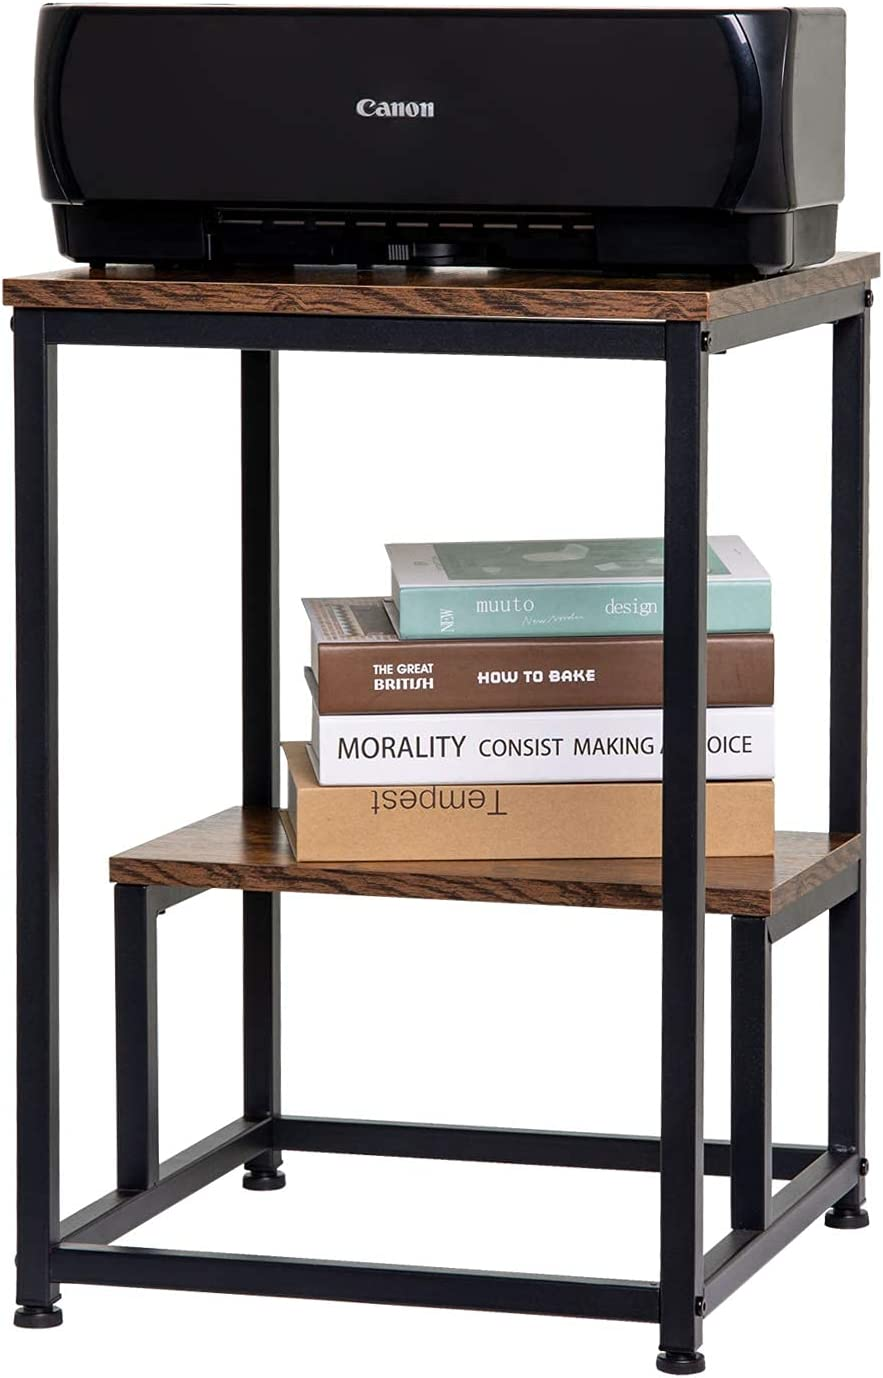 KSWIN Industrial End Table, Square Side Table with 2-Tier Storage, Metal Frame Printer Stand for Home Office 16